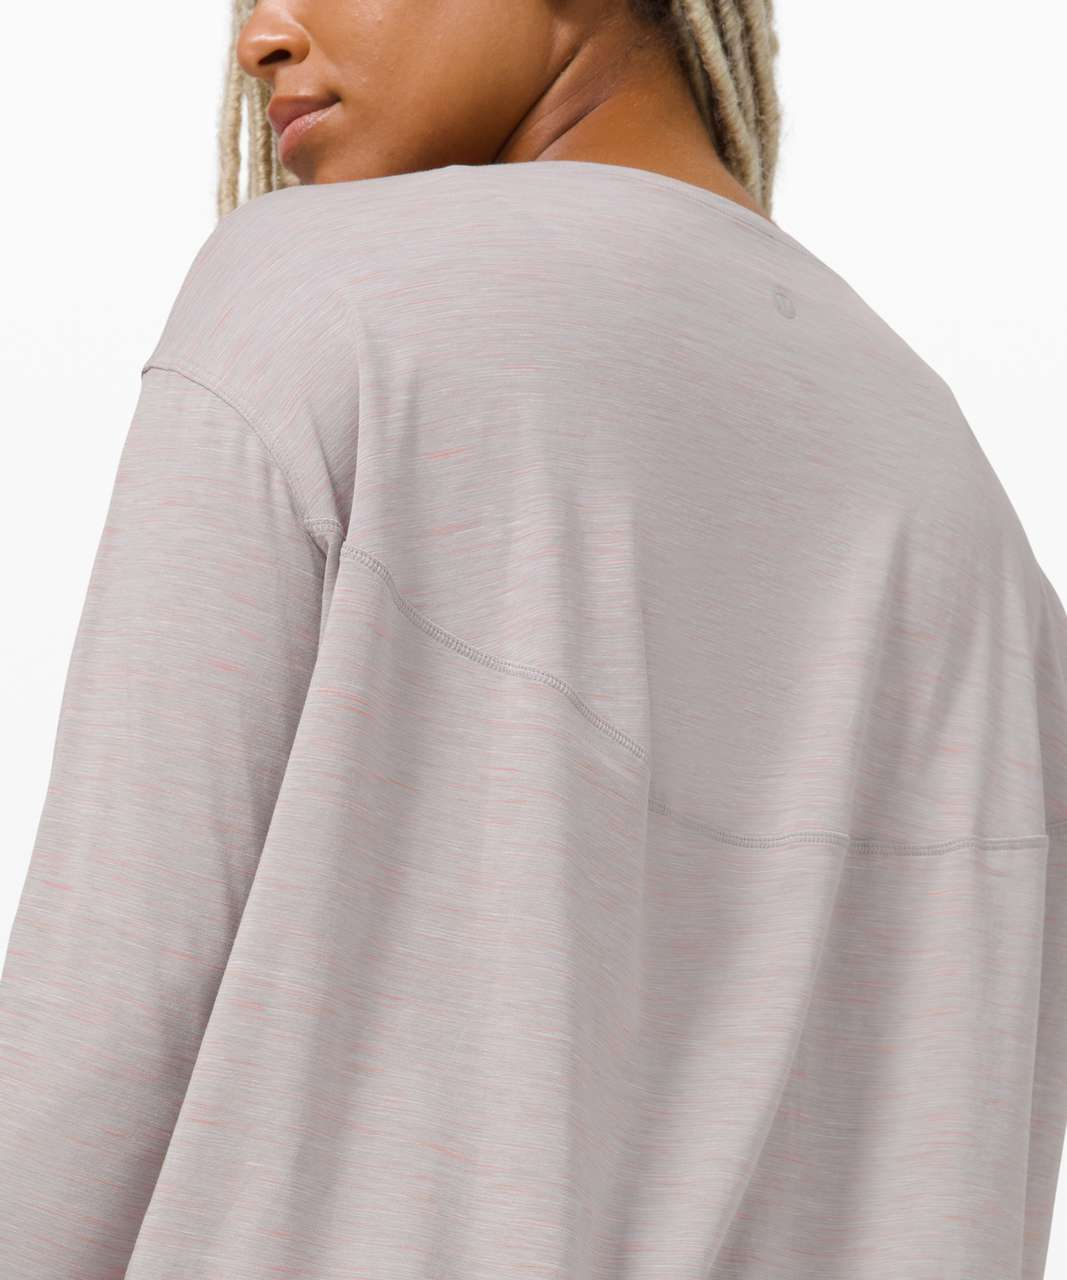 Lululemon Back In Action Long Sleeve - 3 Colour Space Dye Silver Drop Pink Pastel